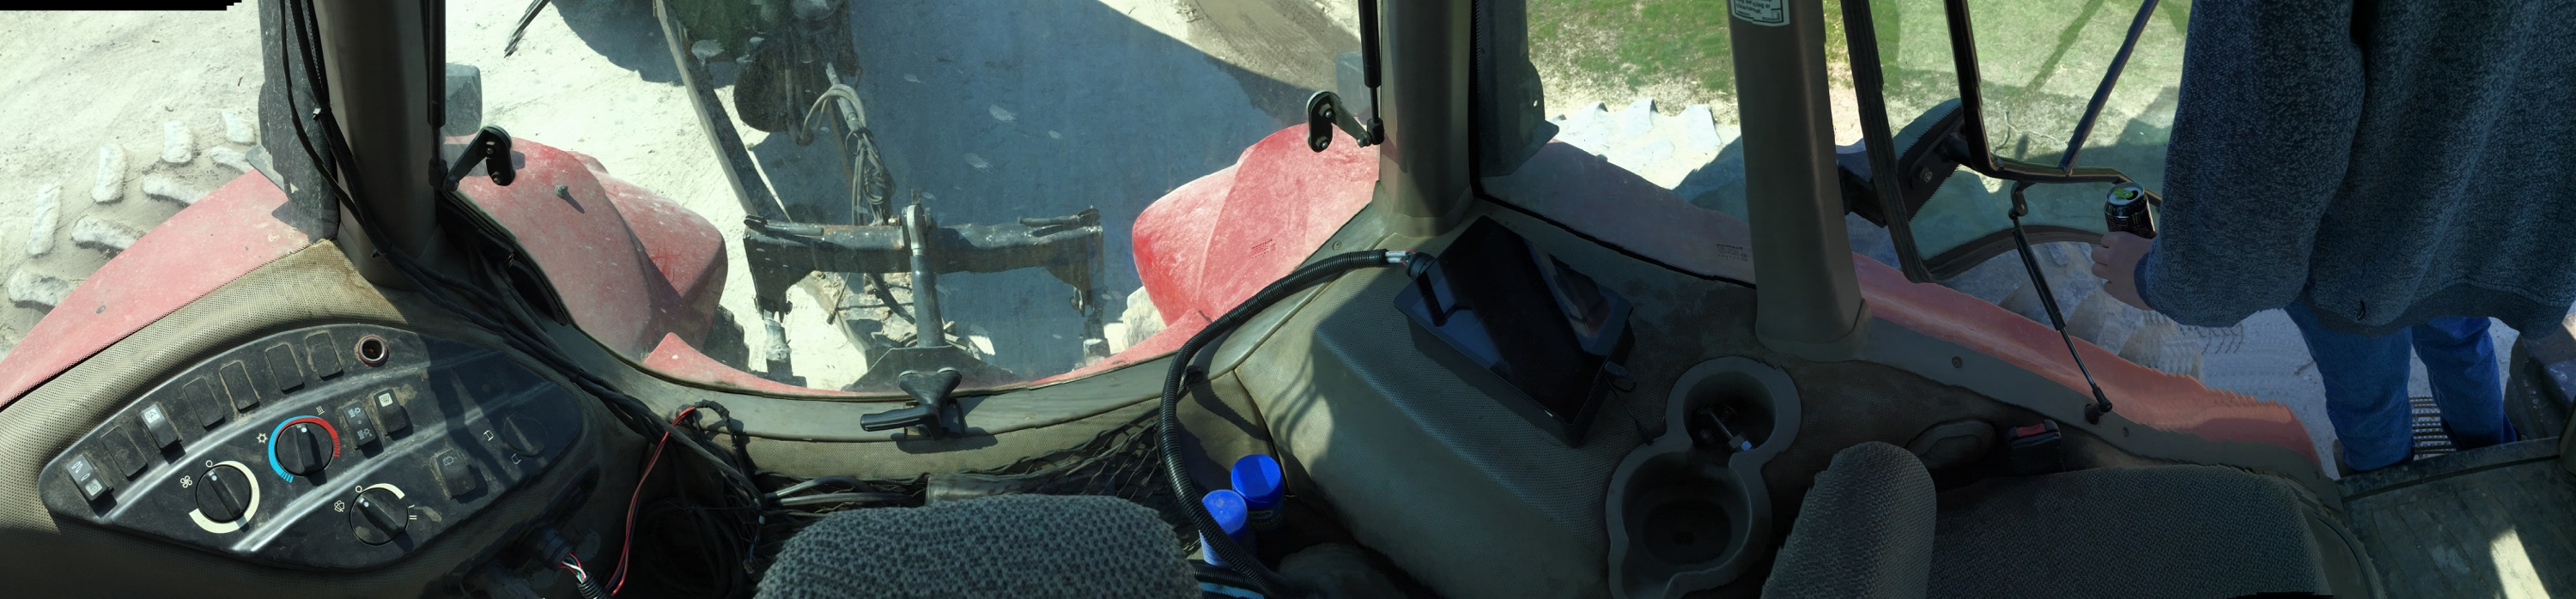 CANdroid deployed in a tractor